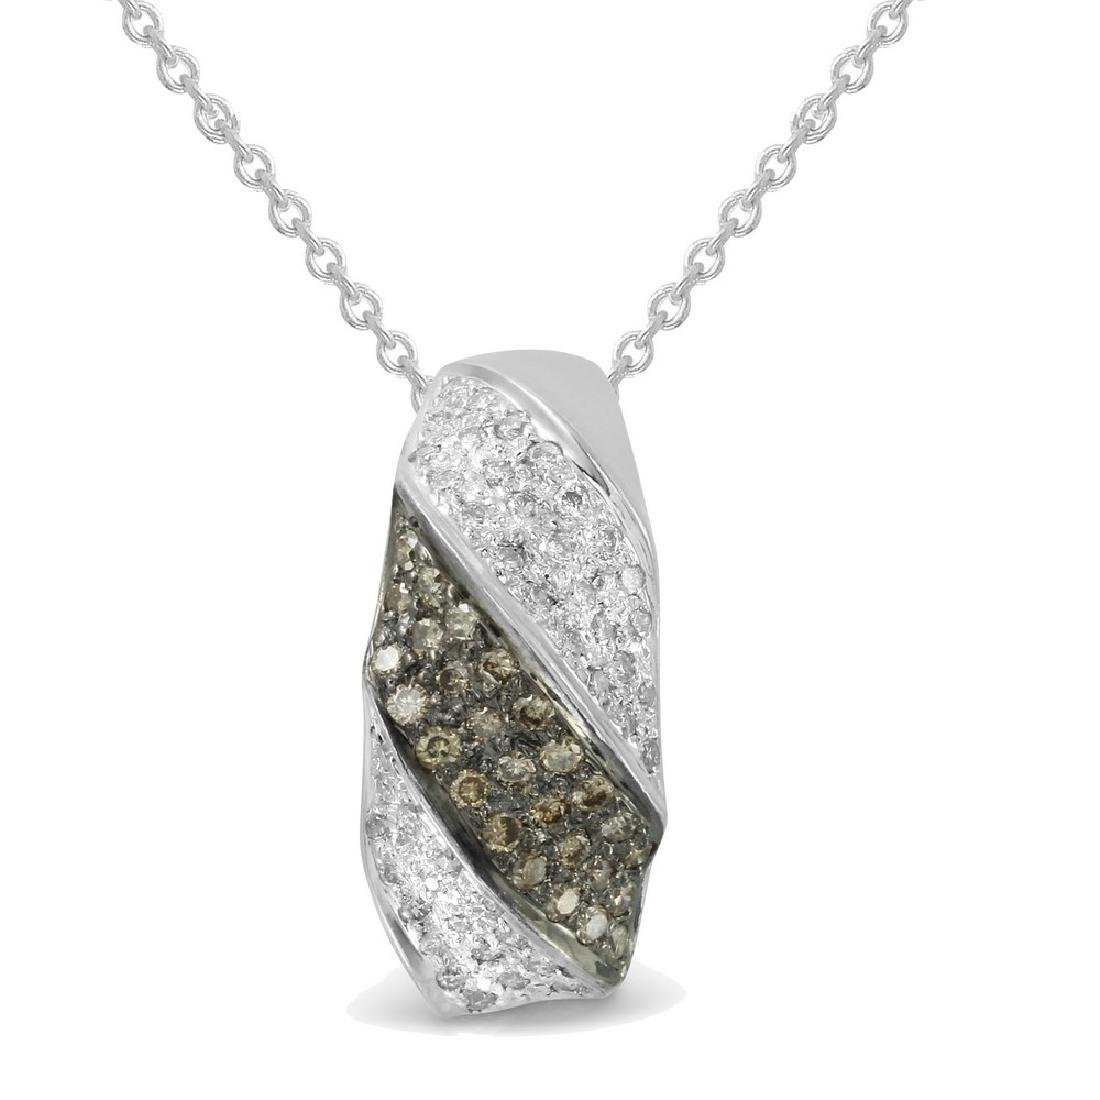 Genuine 0.37 TCW 14K White Gold Ladies Pendant